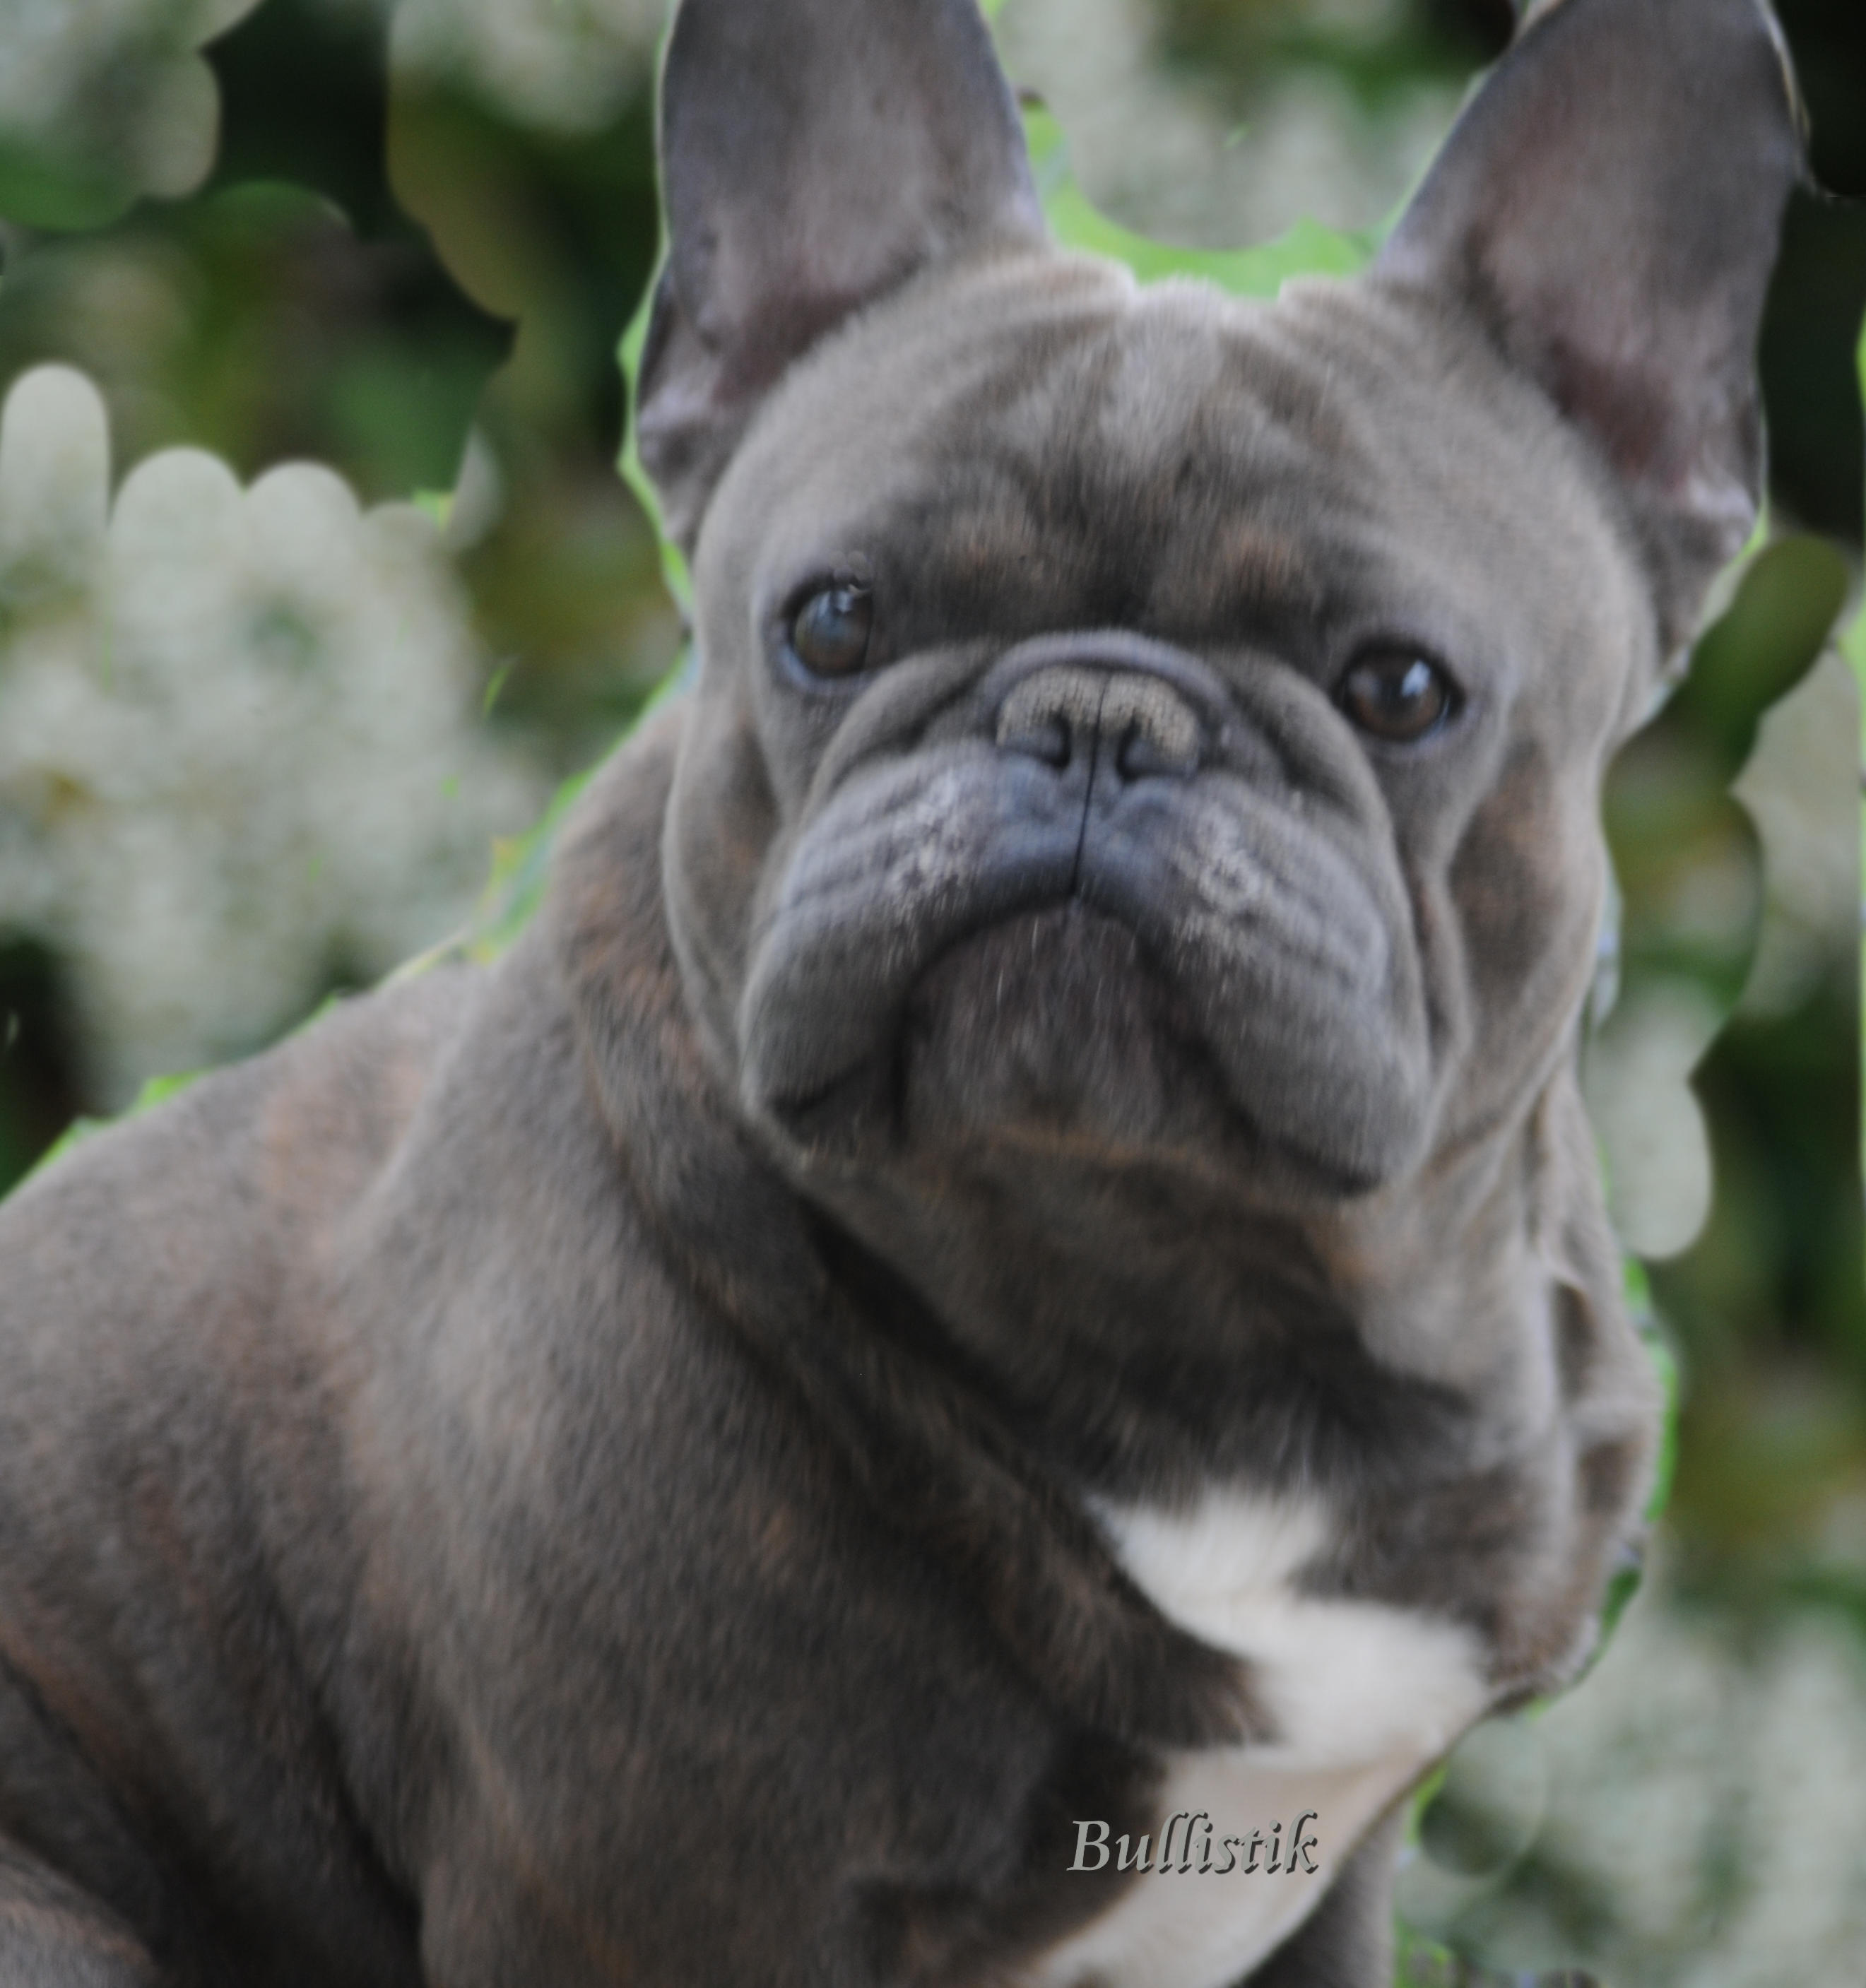 ... has passed his Genetic testing! – Blue French Bulldogs by Bullistik